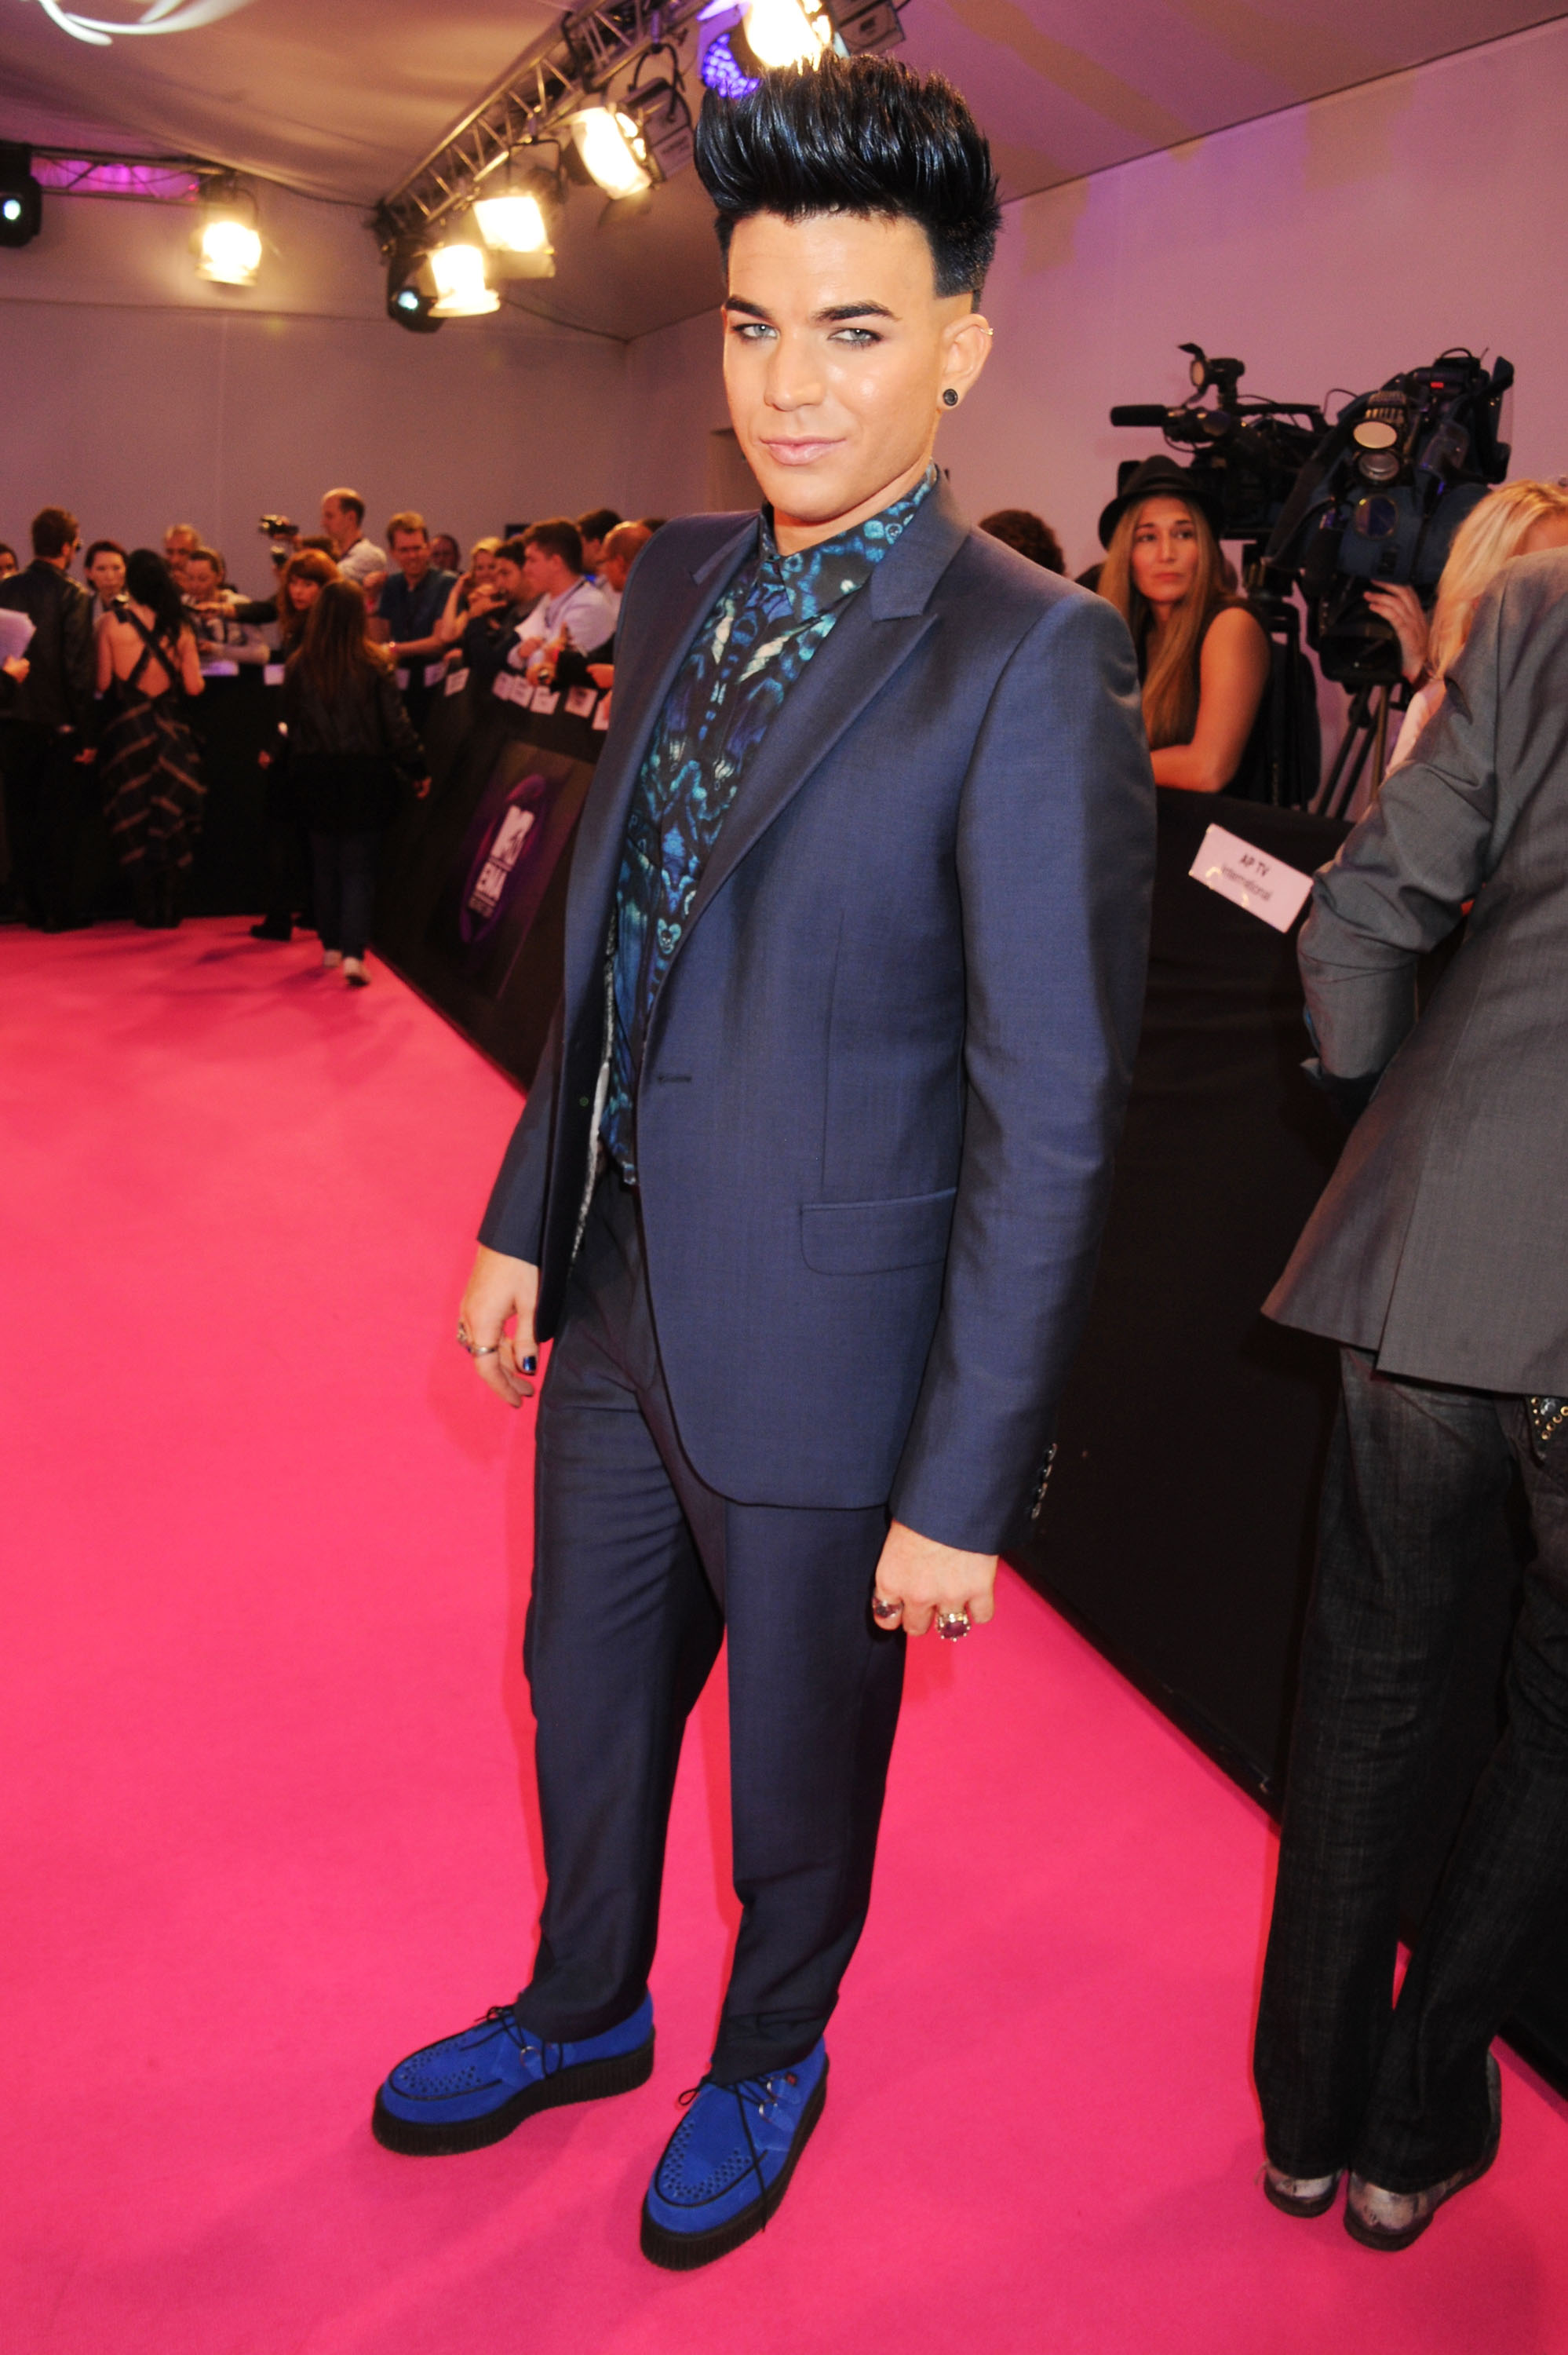 Adam Lambert's bright blue shoes stood out on the pink carpet.